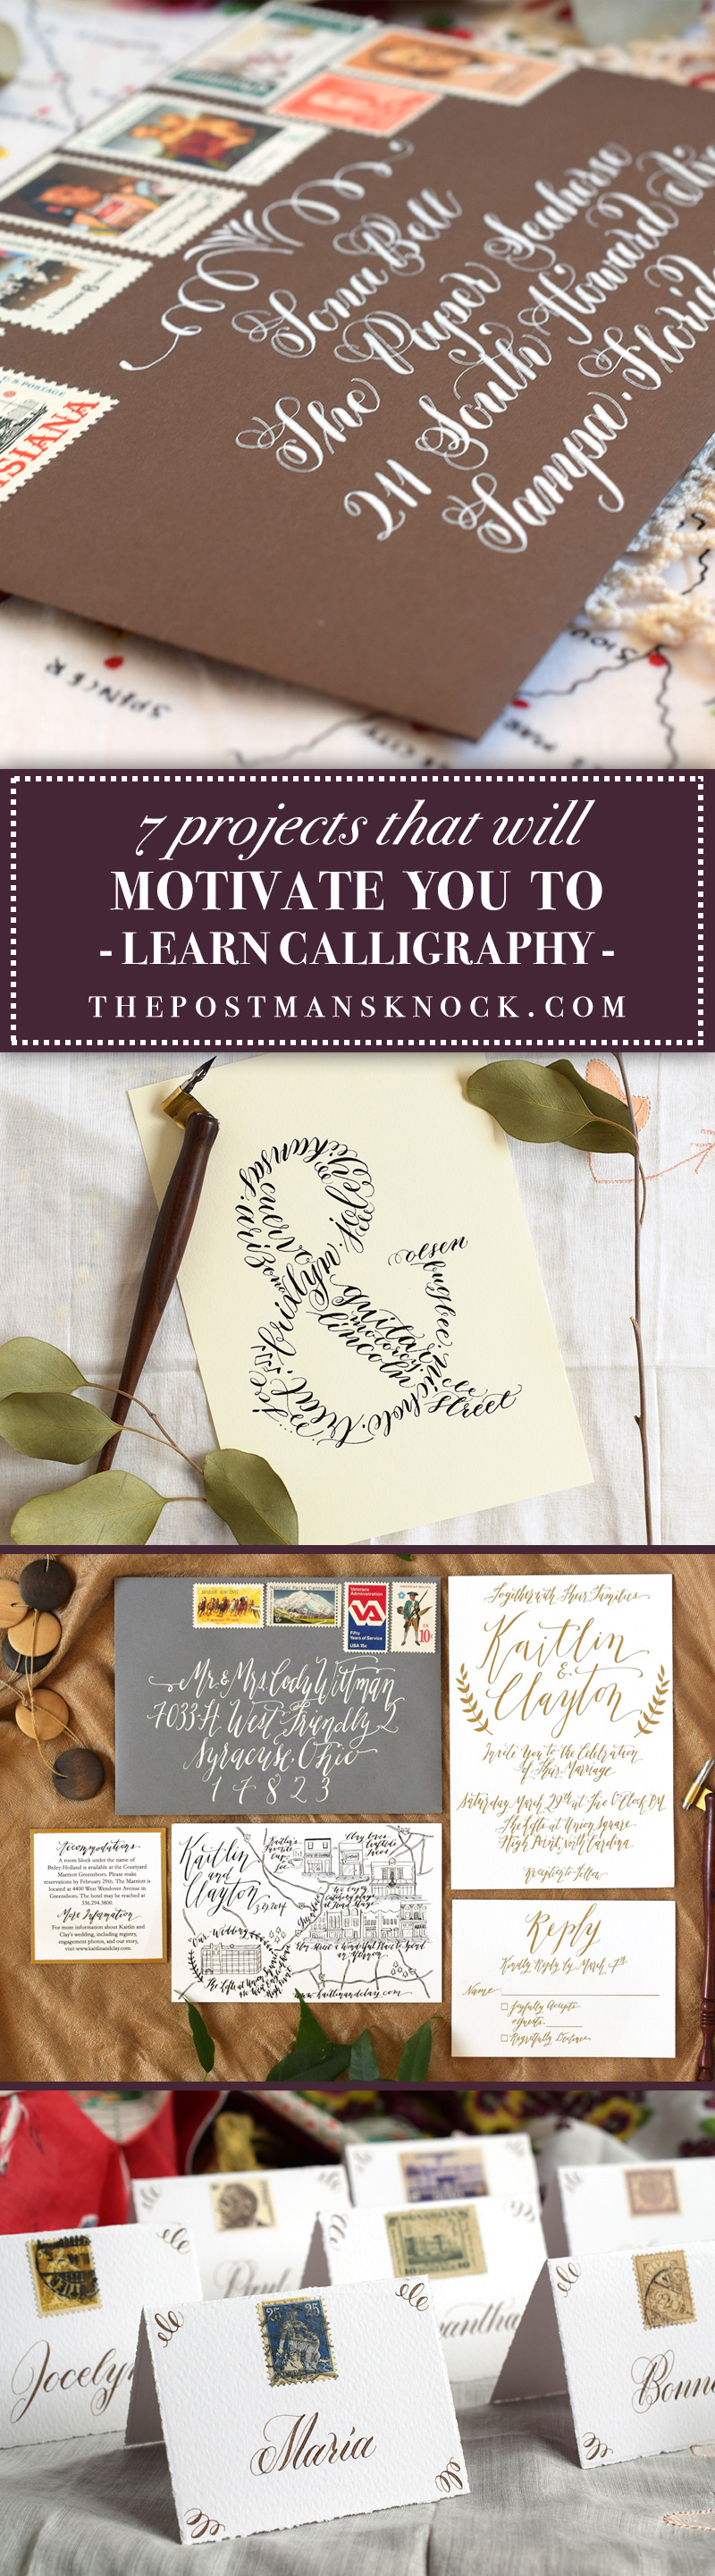 Projects that will motivate you to learn calligraphy